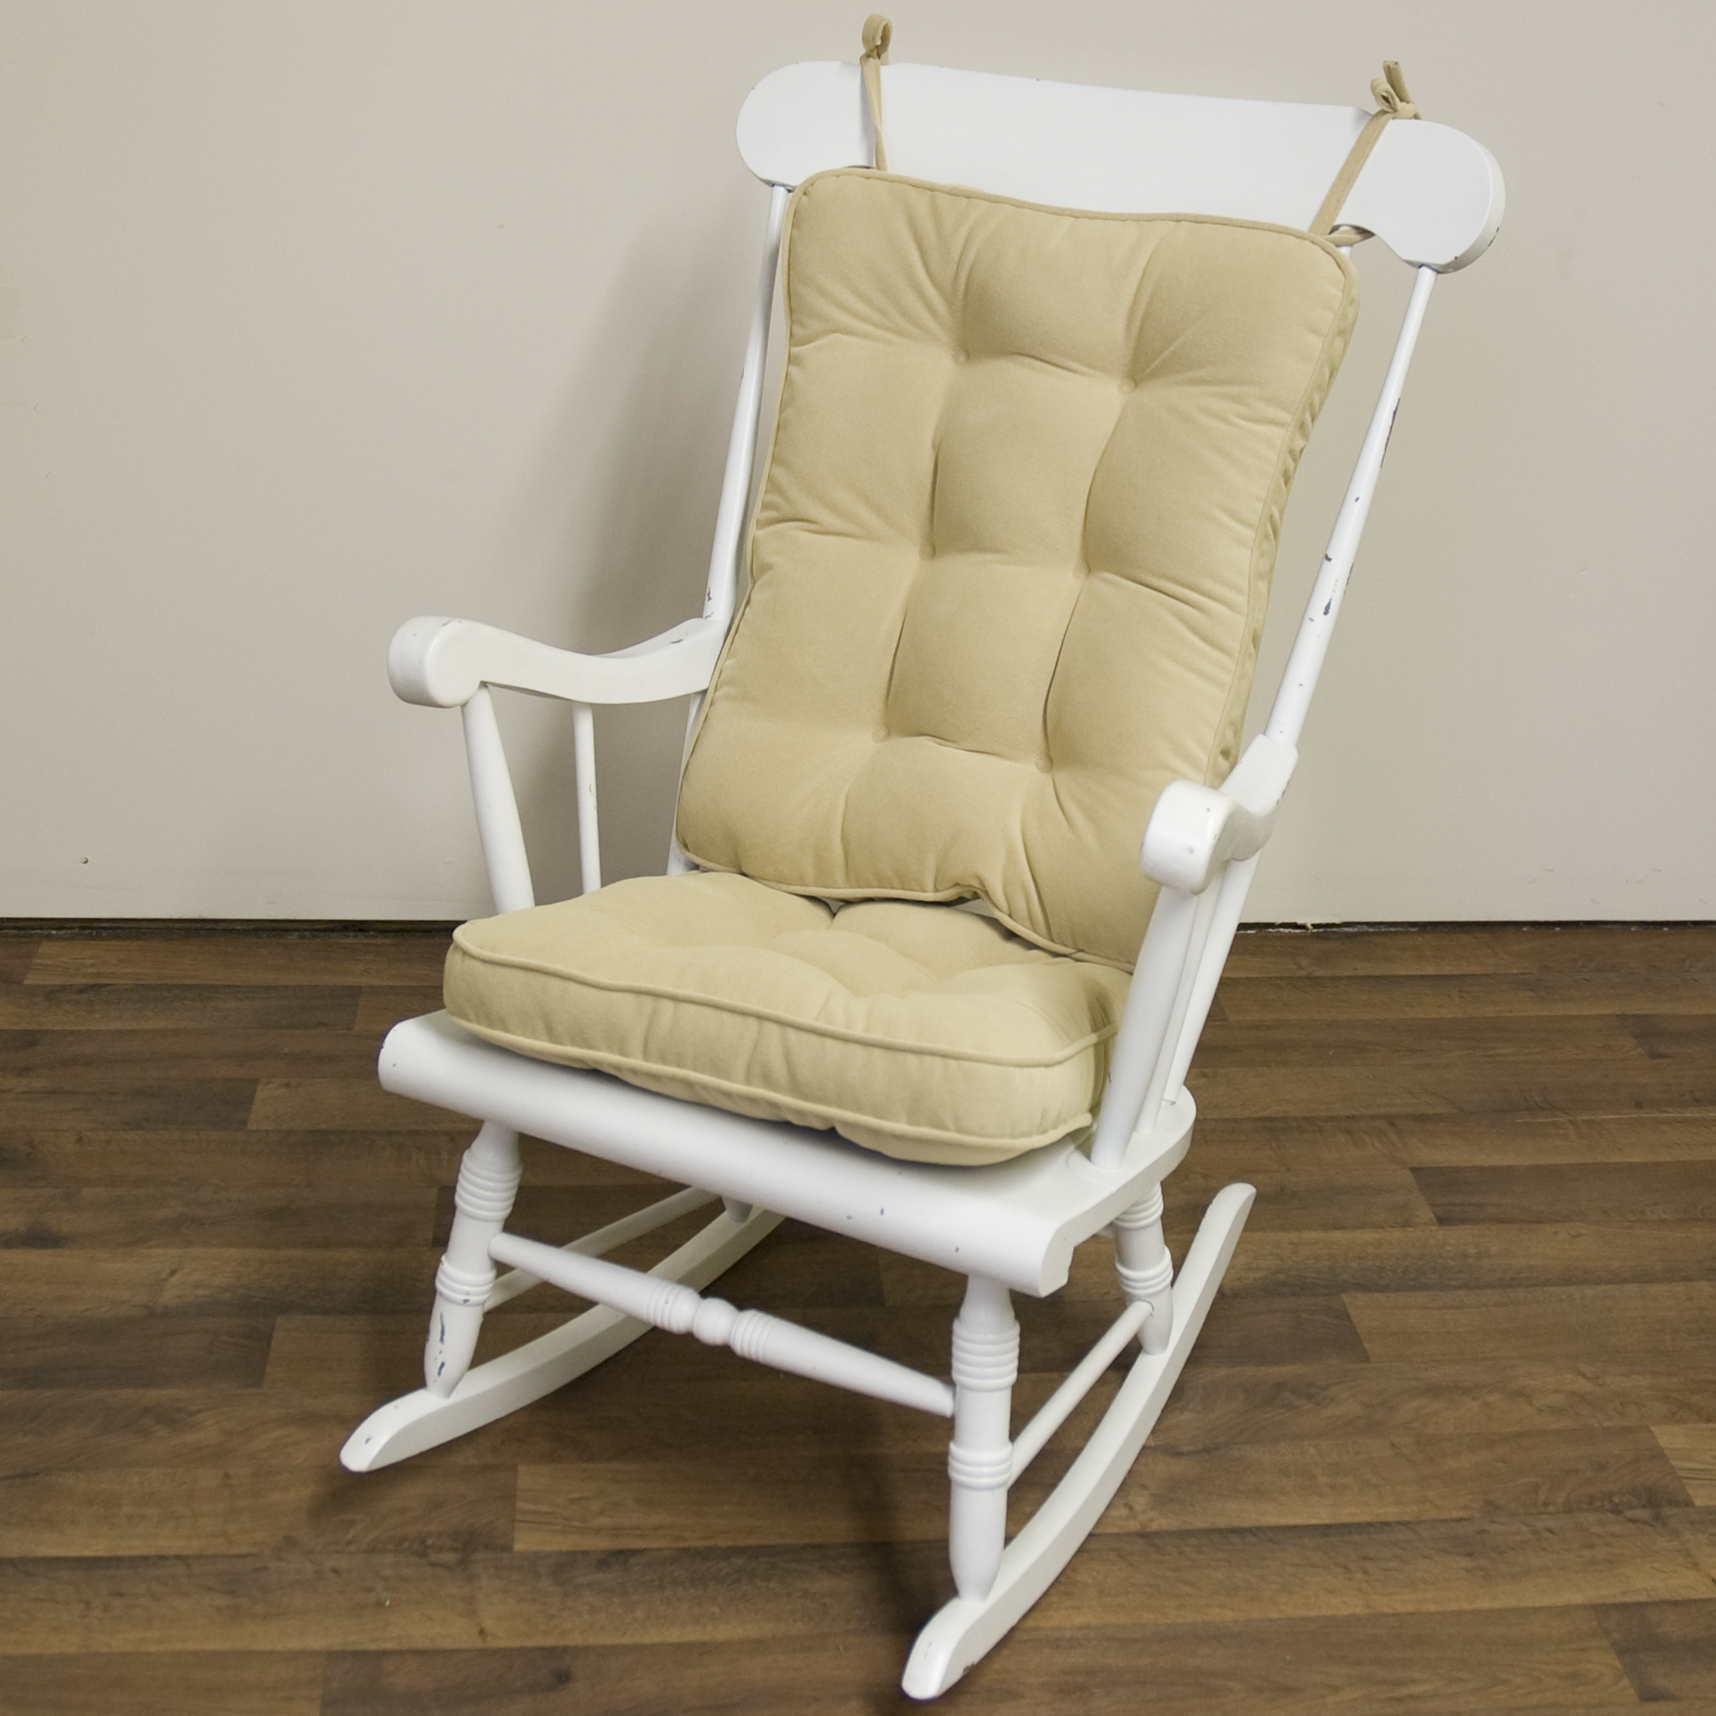 ROCKING CHAIR PADS AND SEAT CUSHIONS  Chair Pads  Cushions